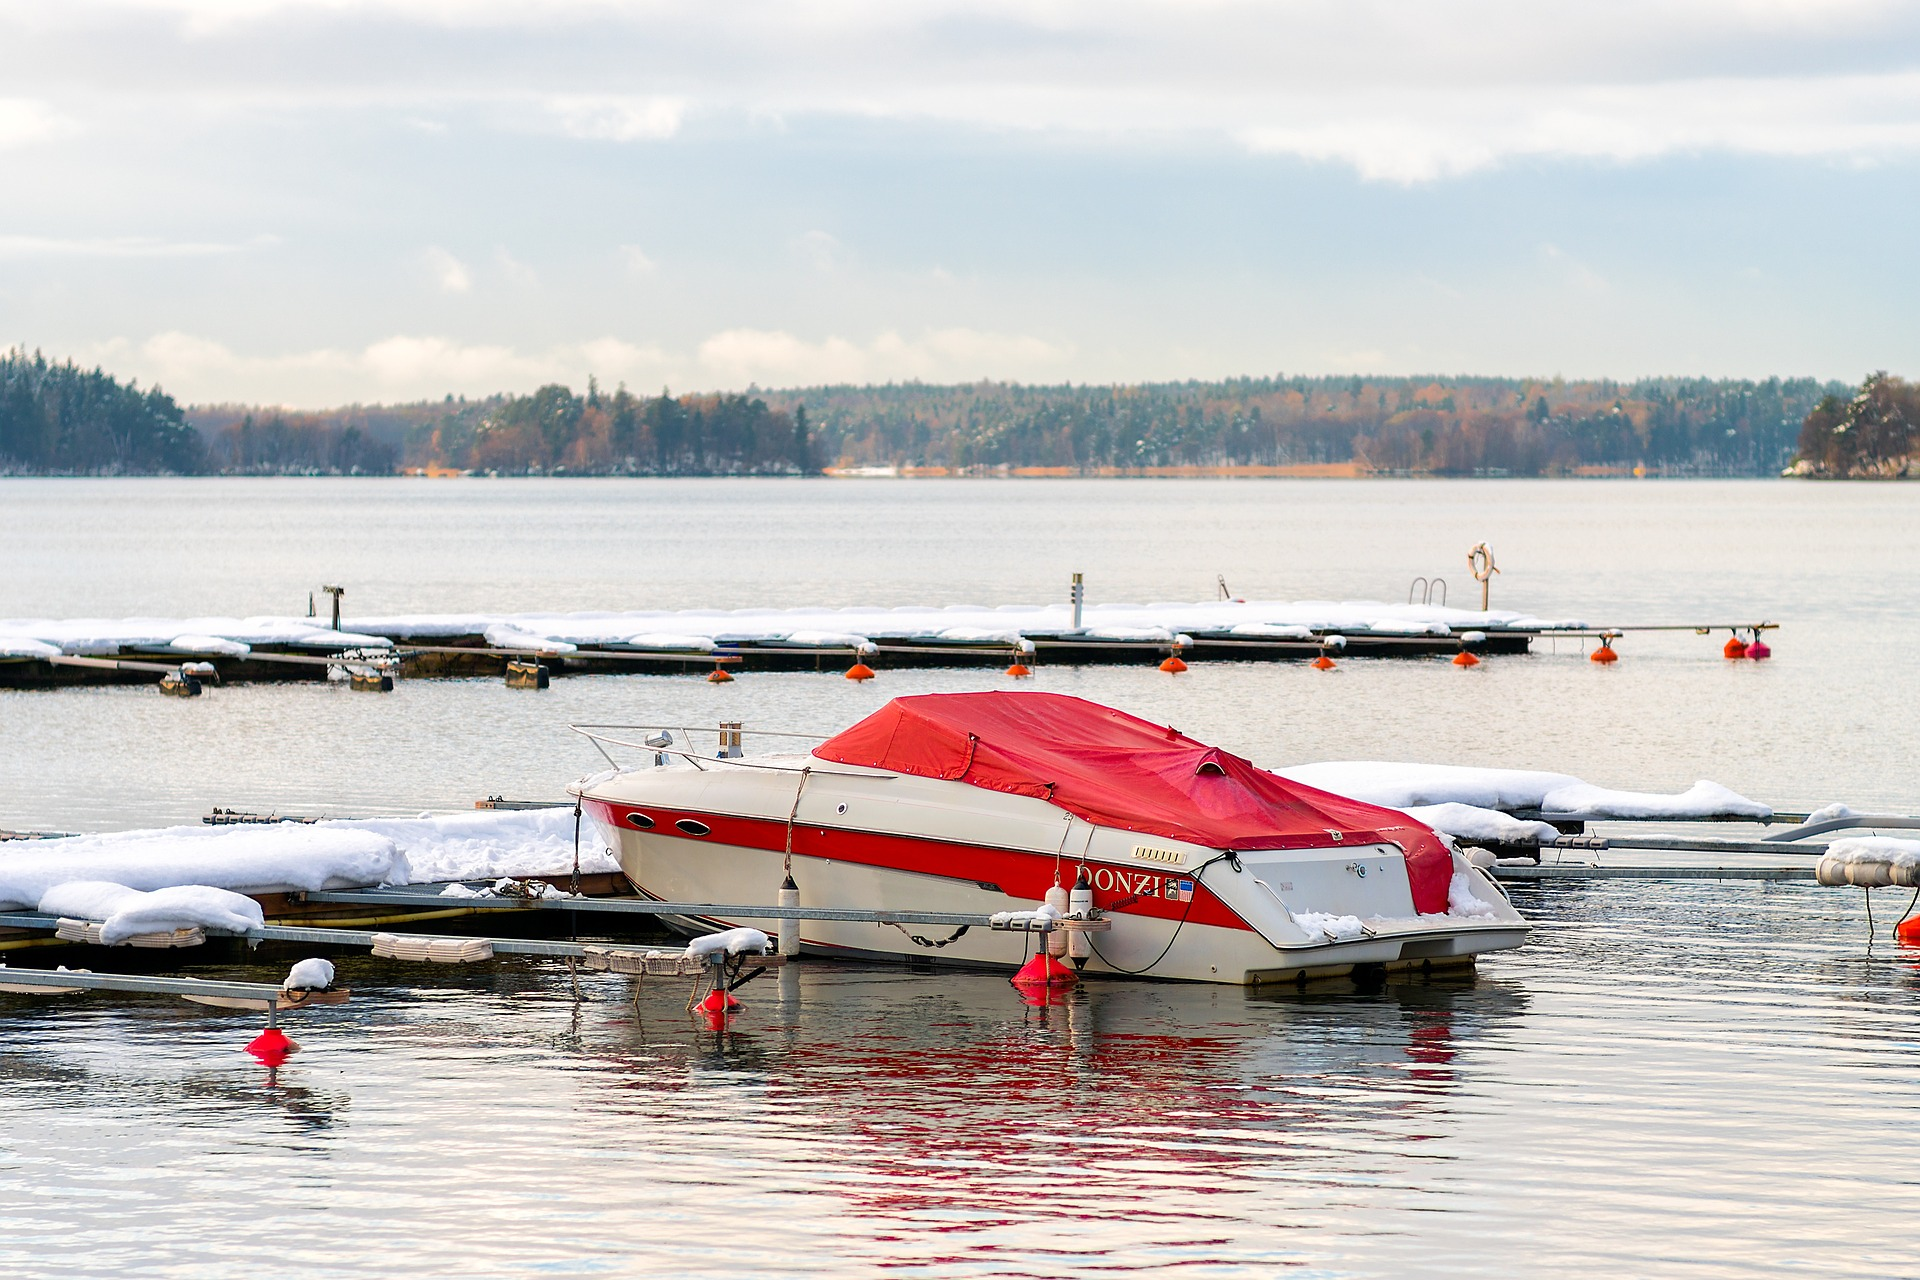 4 Boating Safety Tips to Keep In Mind This Winter Season